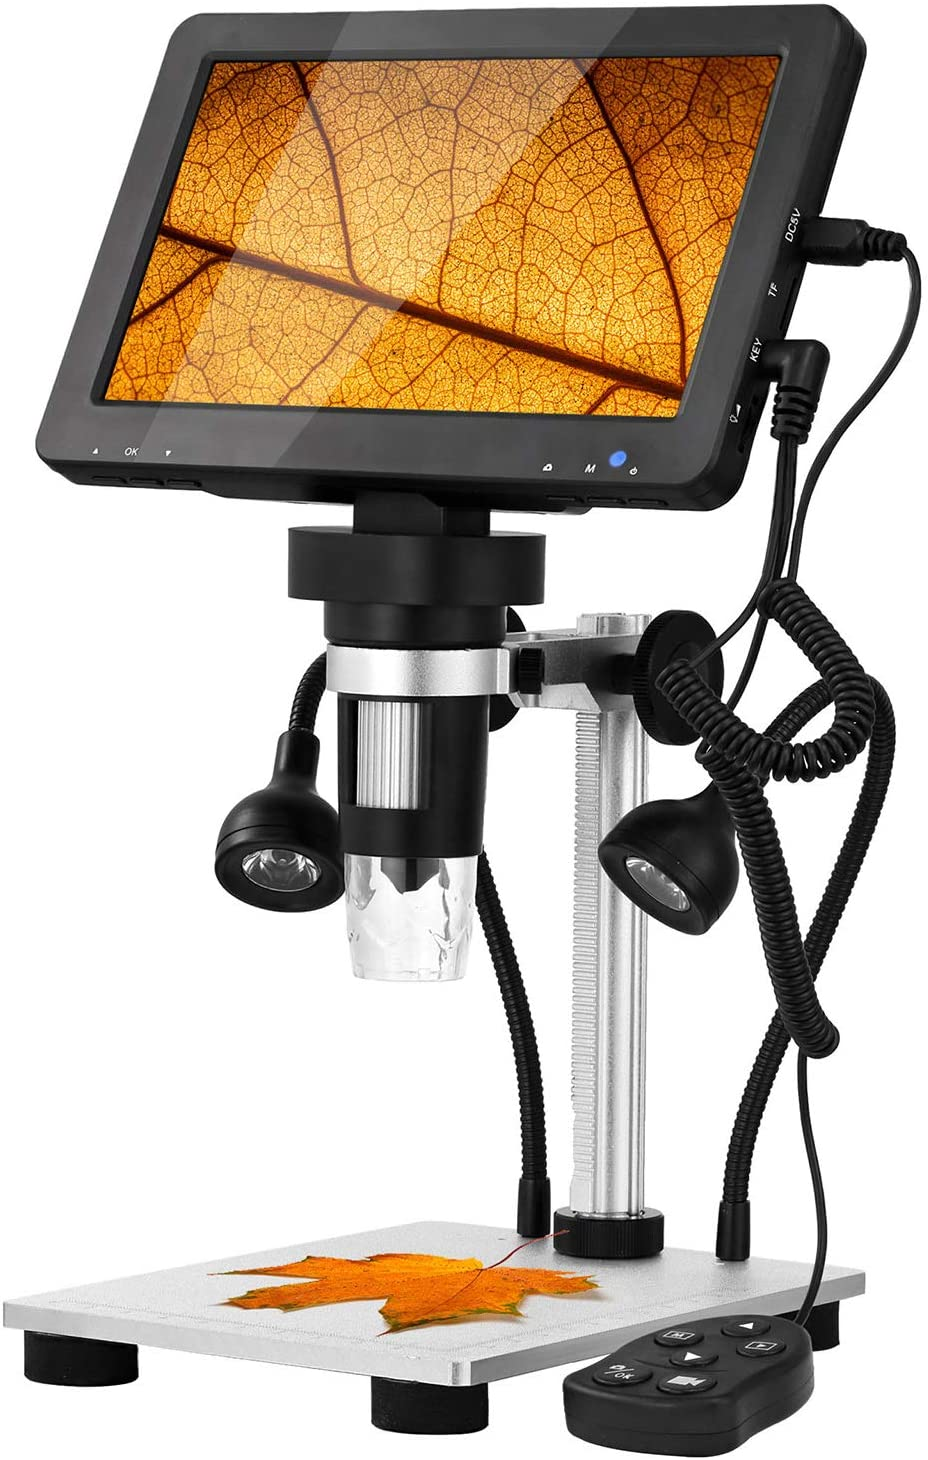 Hayve 7Inch LCD Digital USB Microscope 1200X Magnification,1080P Hand held Camera Video Recorder with 8 Adjustable LED Lights for Circuit Board Repair Soldering PCB Coins,Compatible with Windows MAC